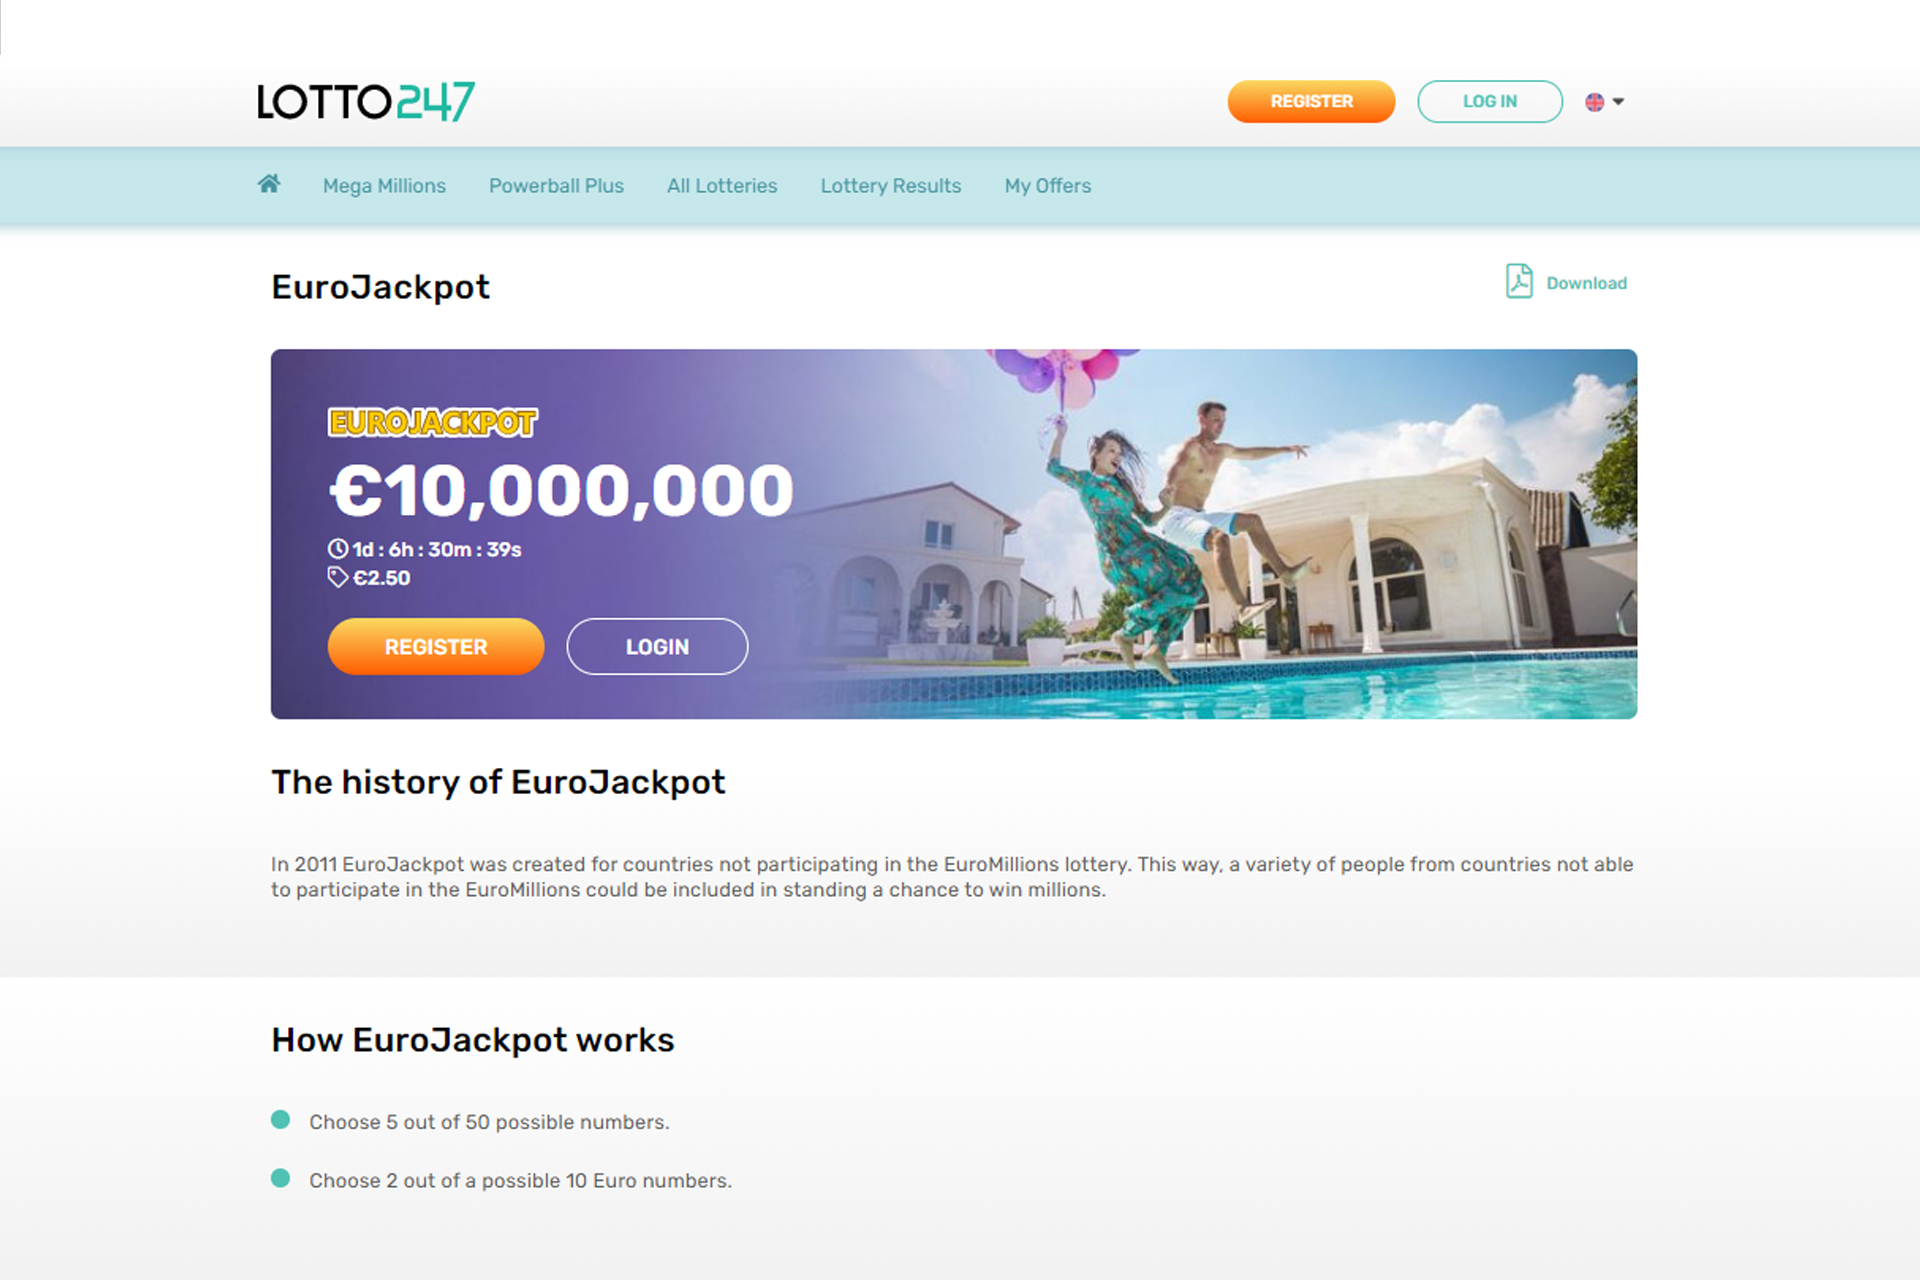 This lottery is for people can't play in EuroMillions lottery.